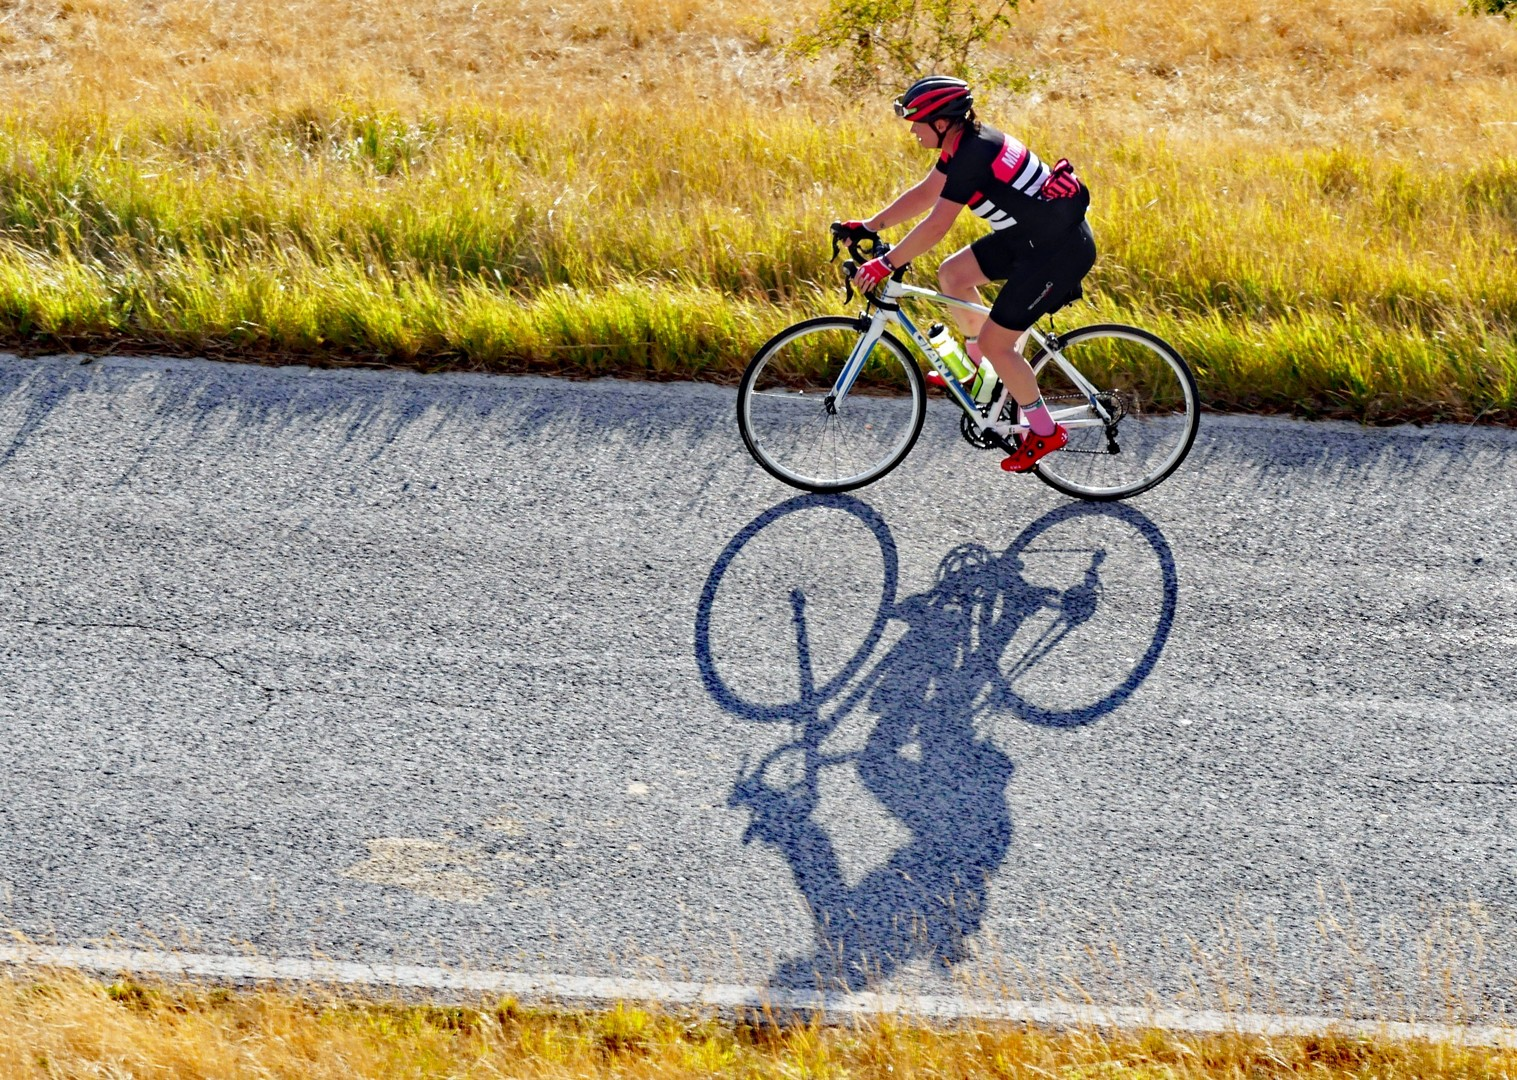 guided-road-cycling-adventure-italy.jpg - Italy - Grand Traverse - South to North (22 days) - Guided Road Cycling Holiday - Road Cycling